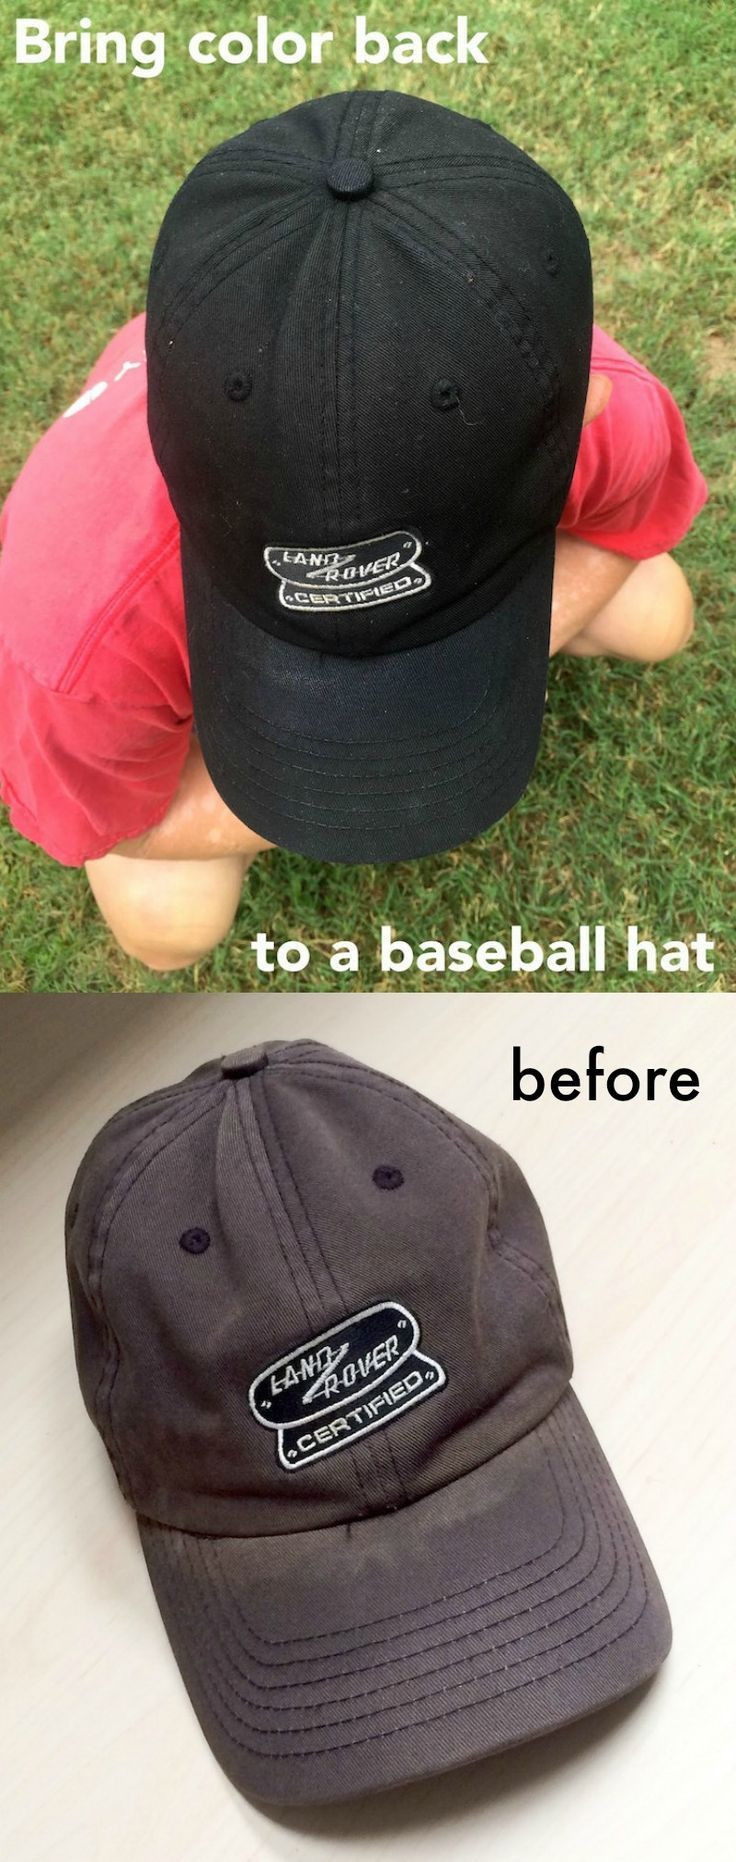 How to bring color back to a baseball hat baseball hats